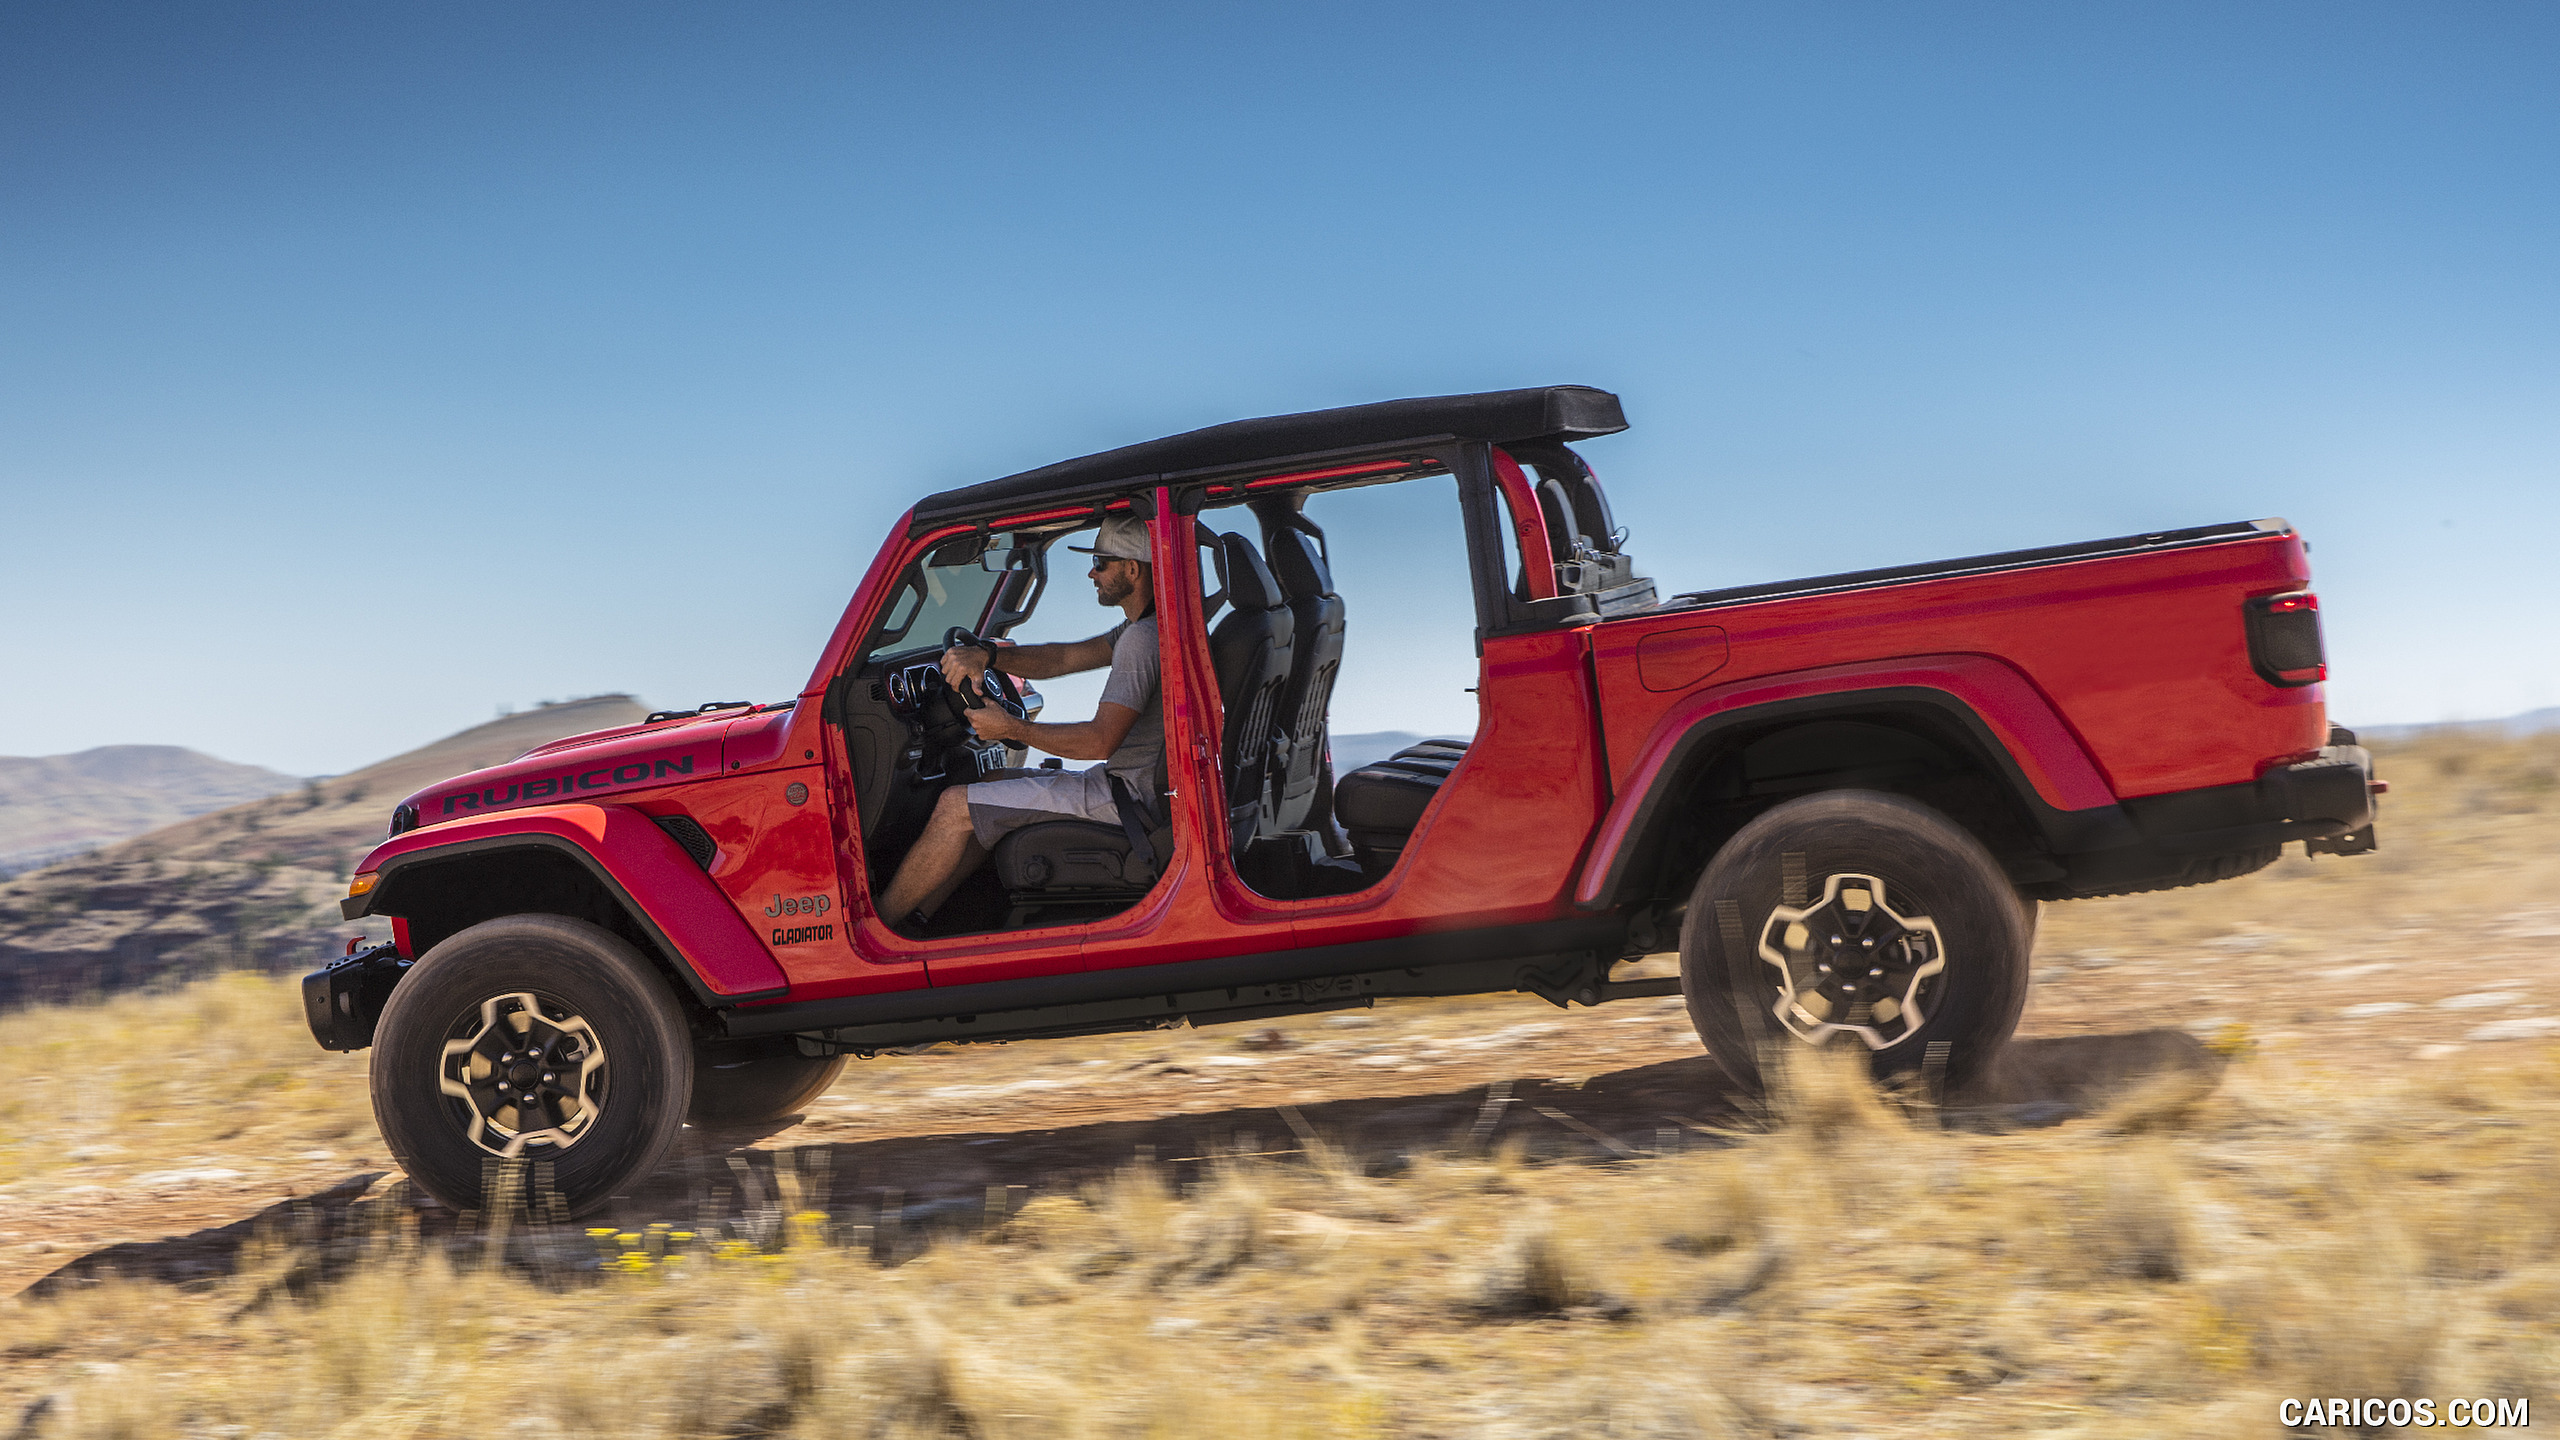 2020 Jeep Gladiator Rubicon   Side HD Wallpaper 91 2560x1440